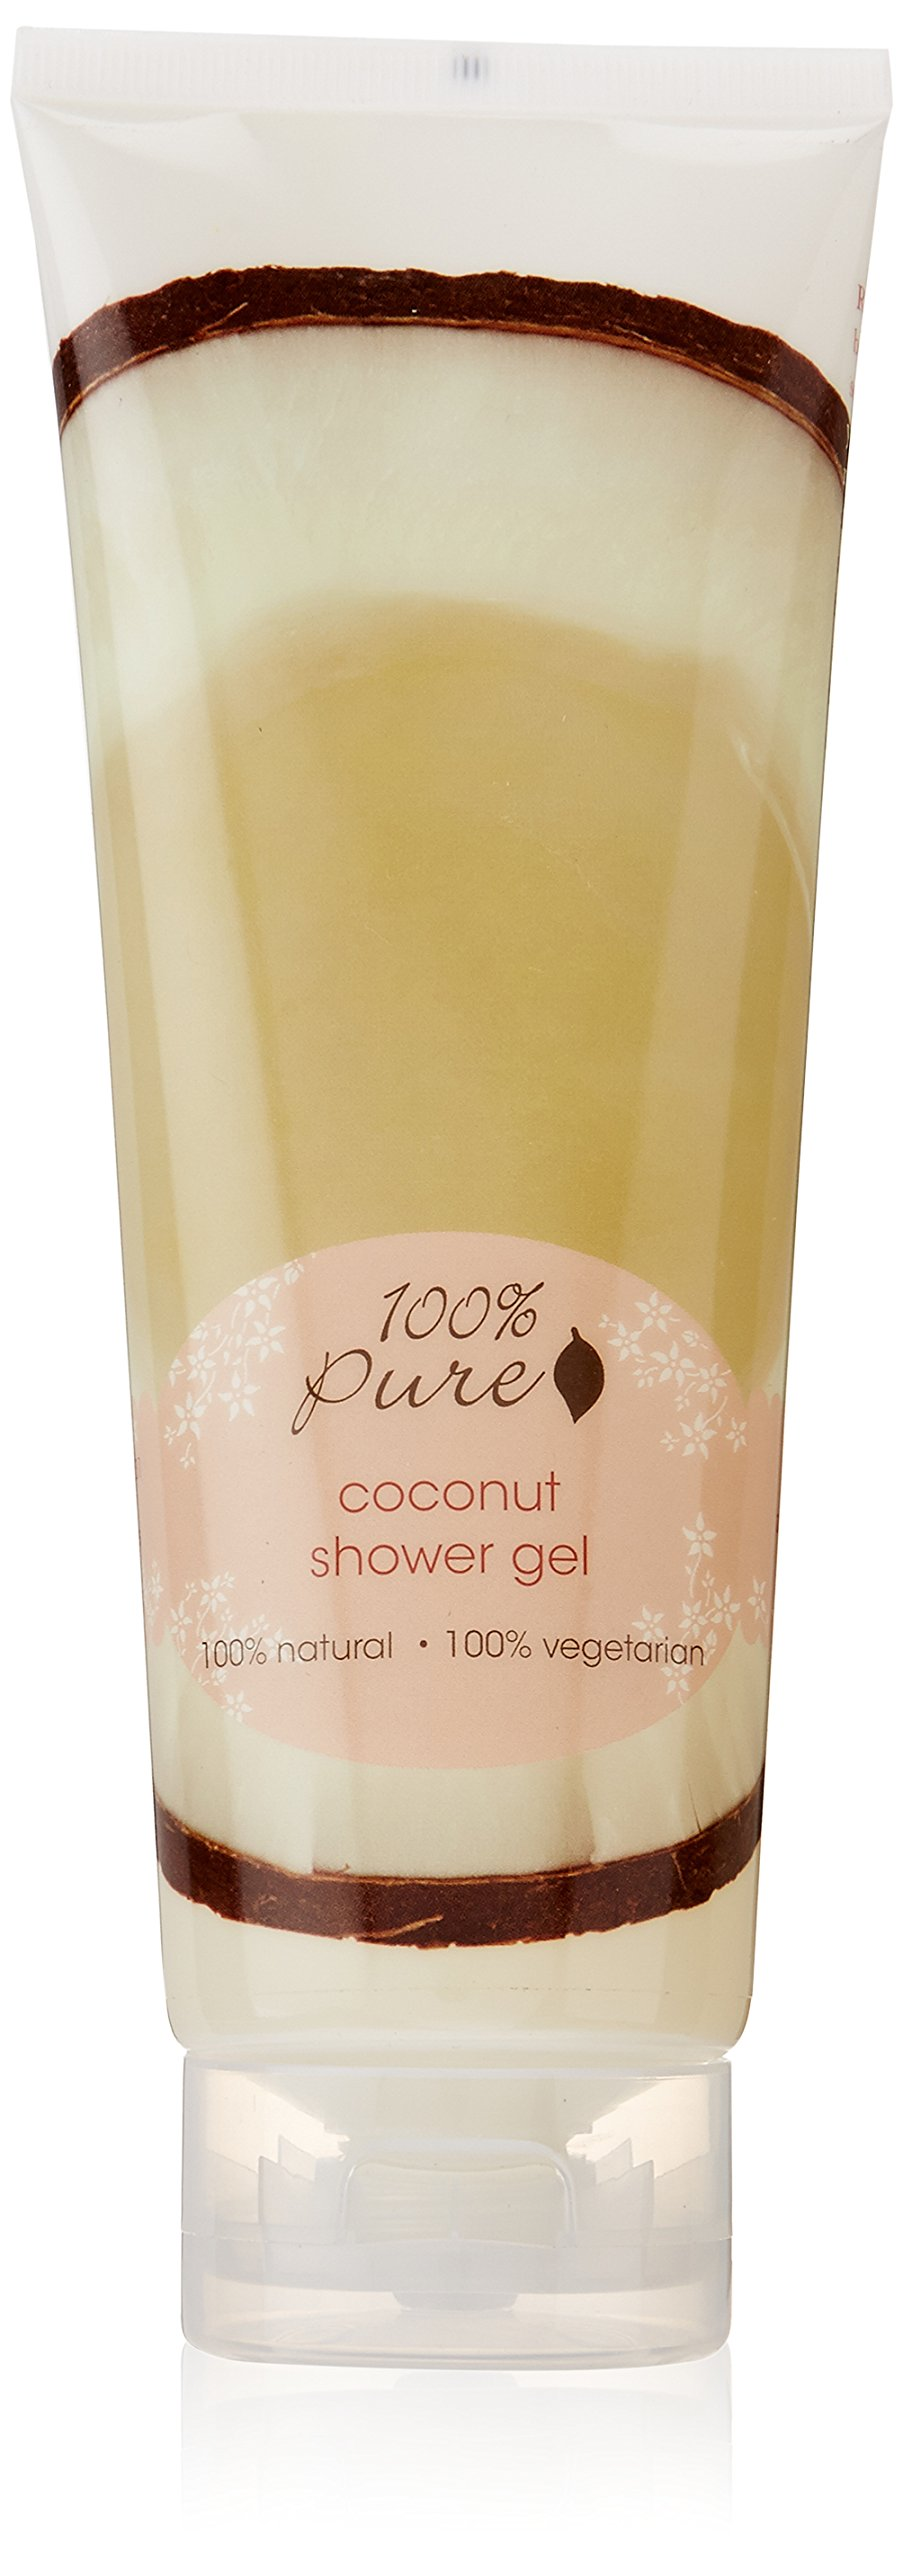 100% Pure Coconut Shower Gel 8 oz 713YyJtIc6L